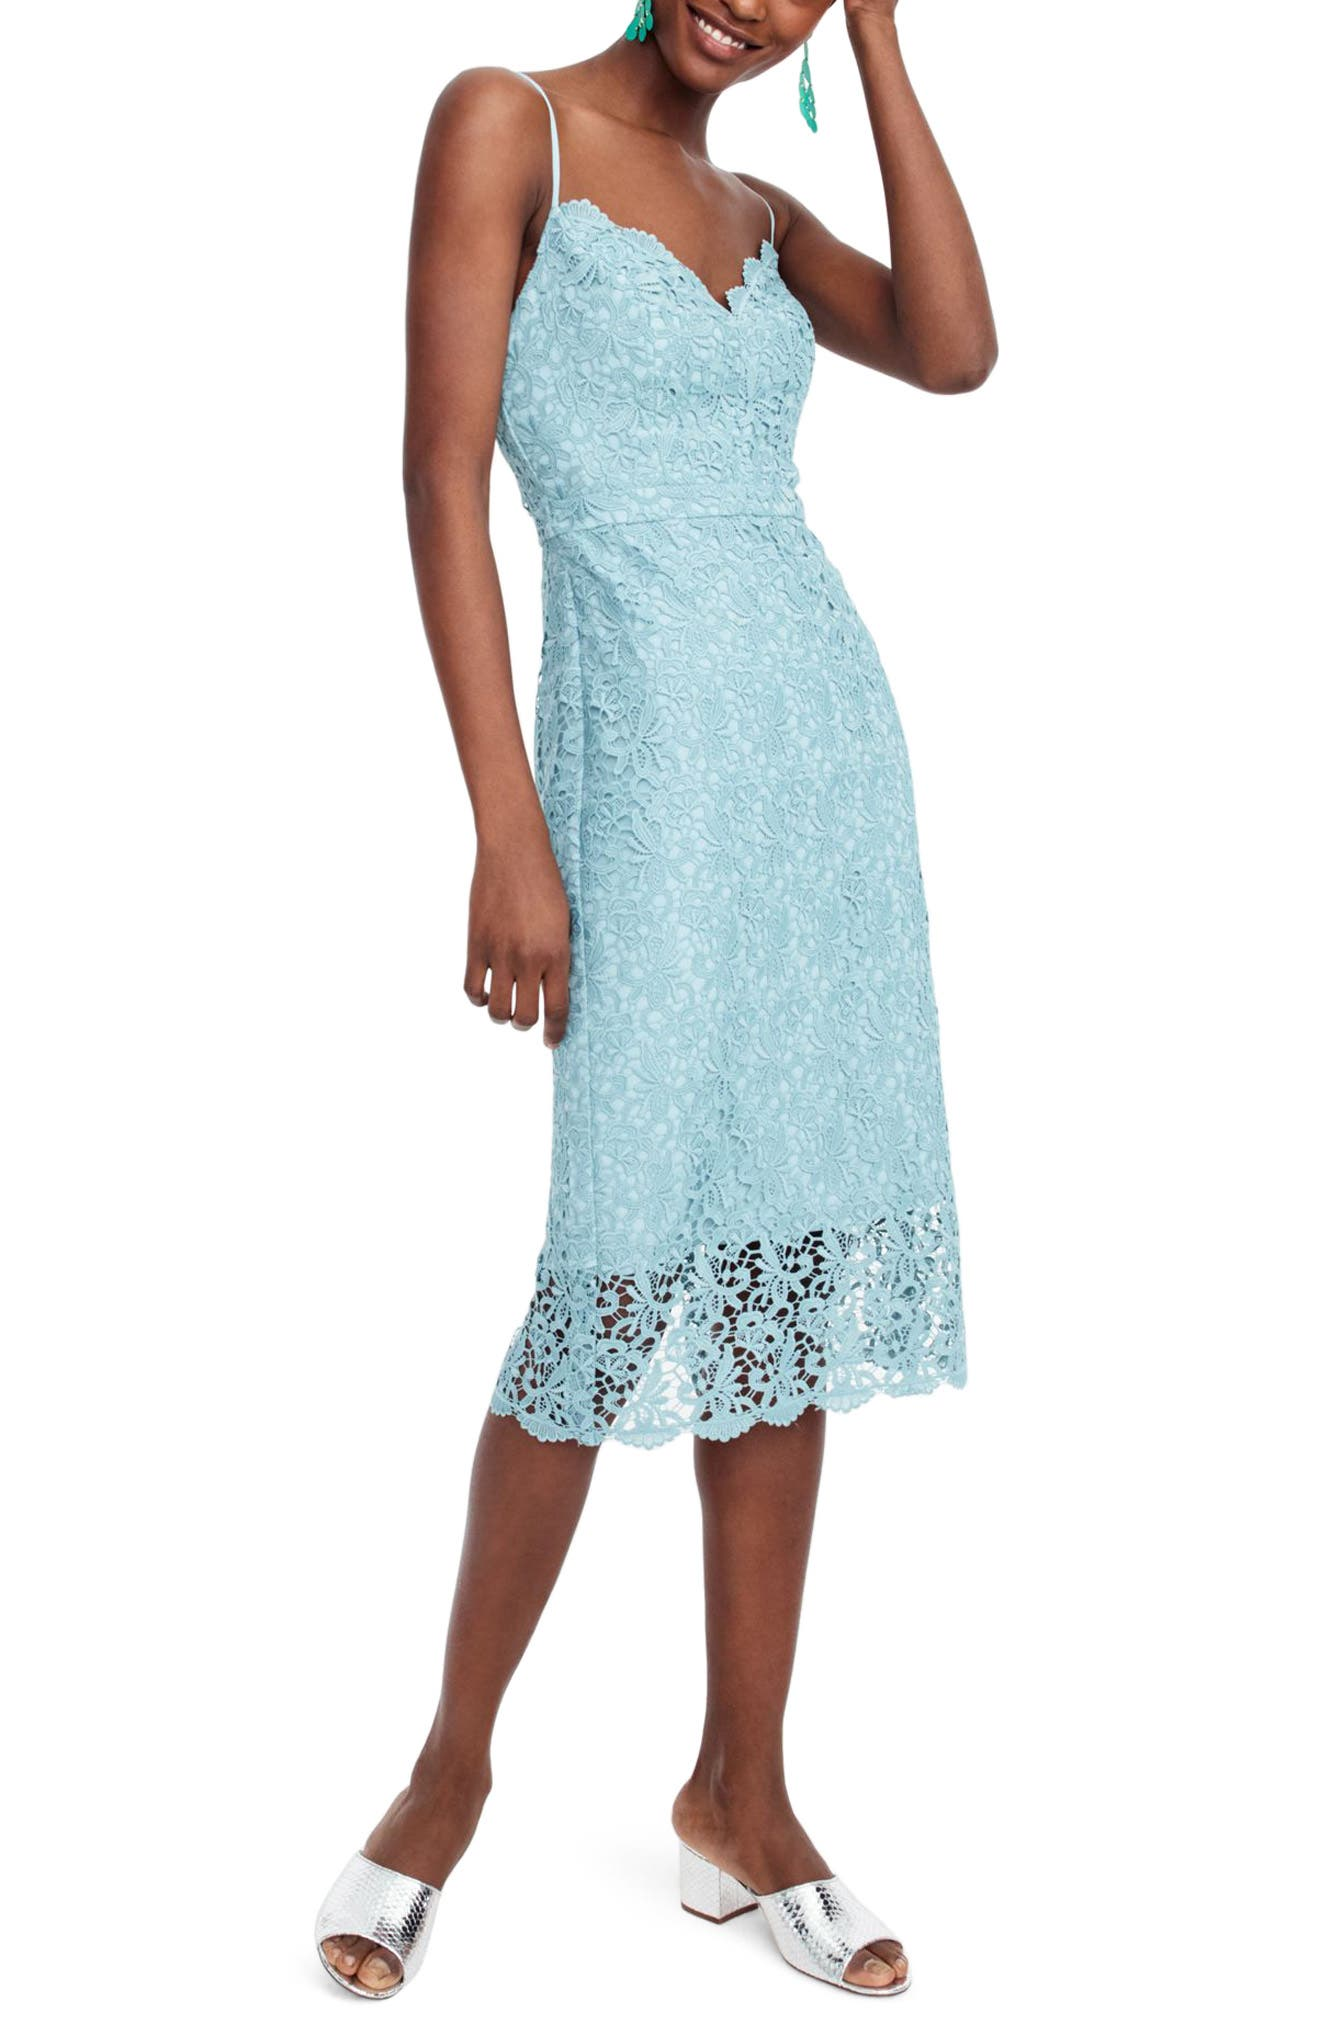 J.Crew Guipure Lace Spaghetti Strap Dress